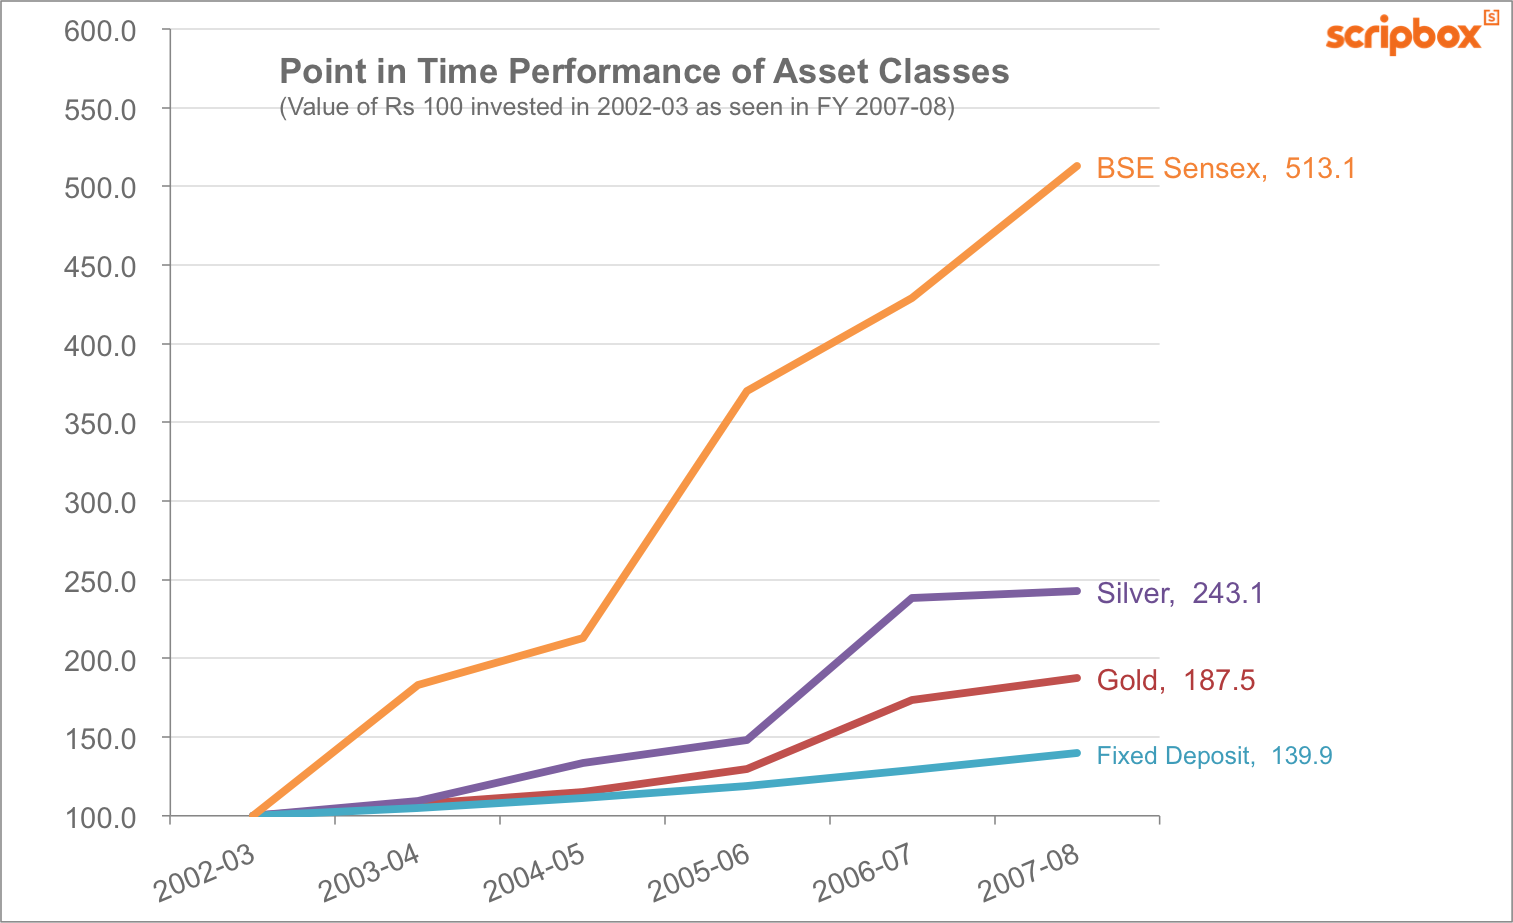 Point in time (2008) returns of various asset classes in India